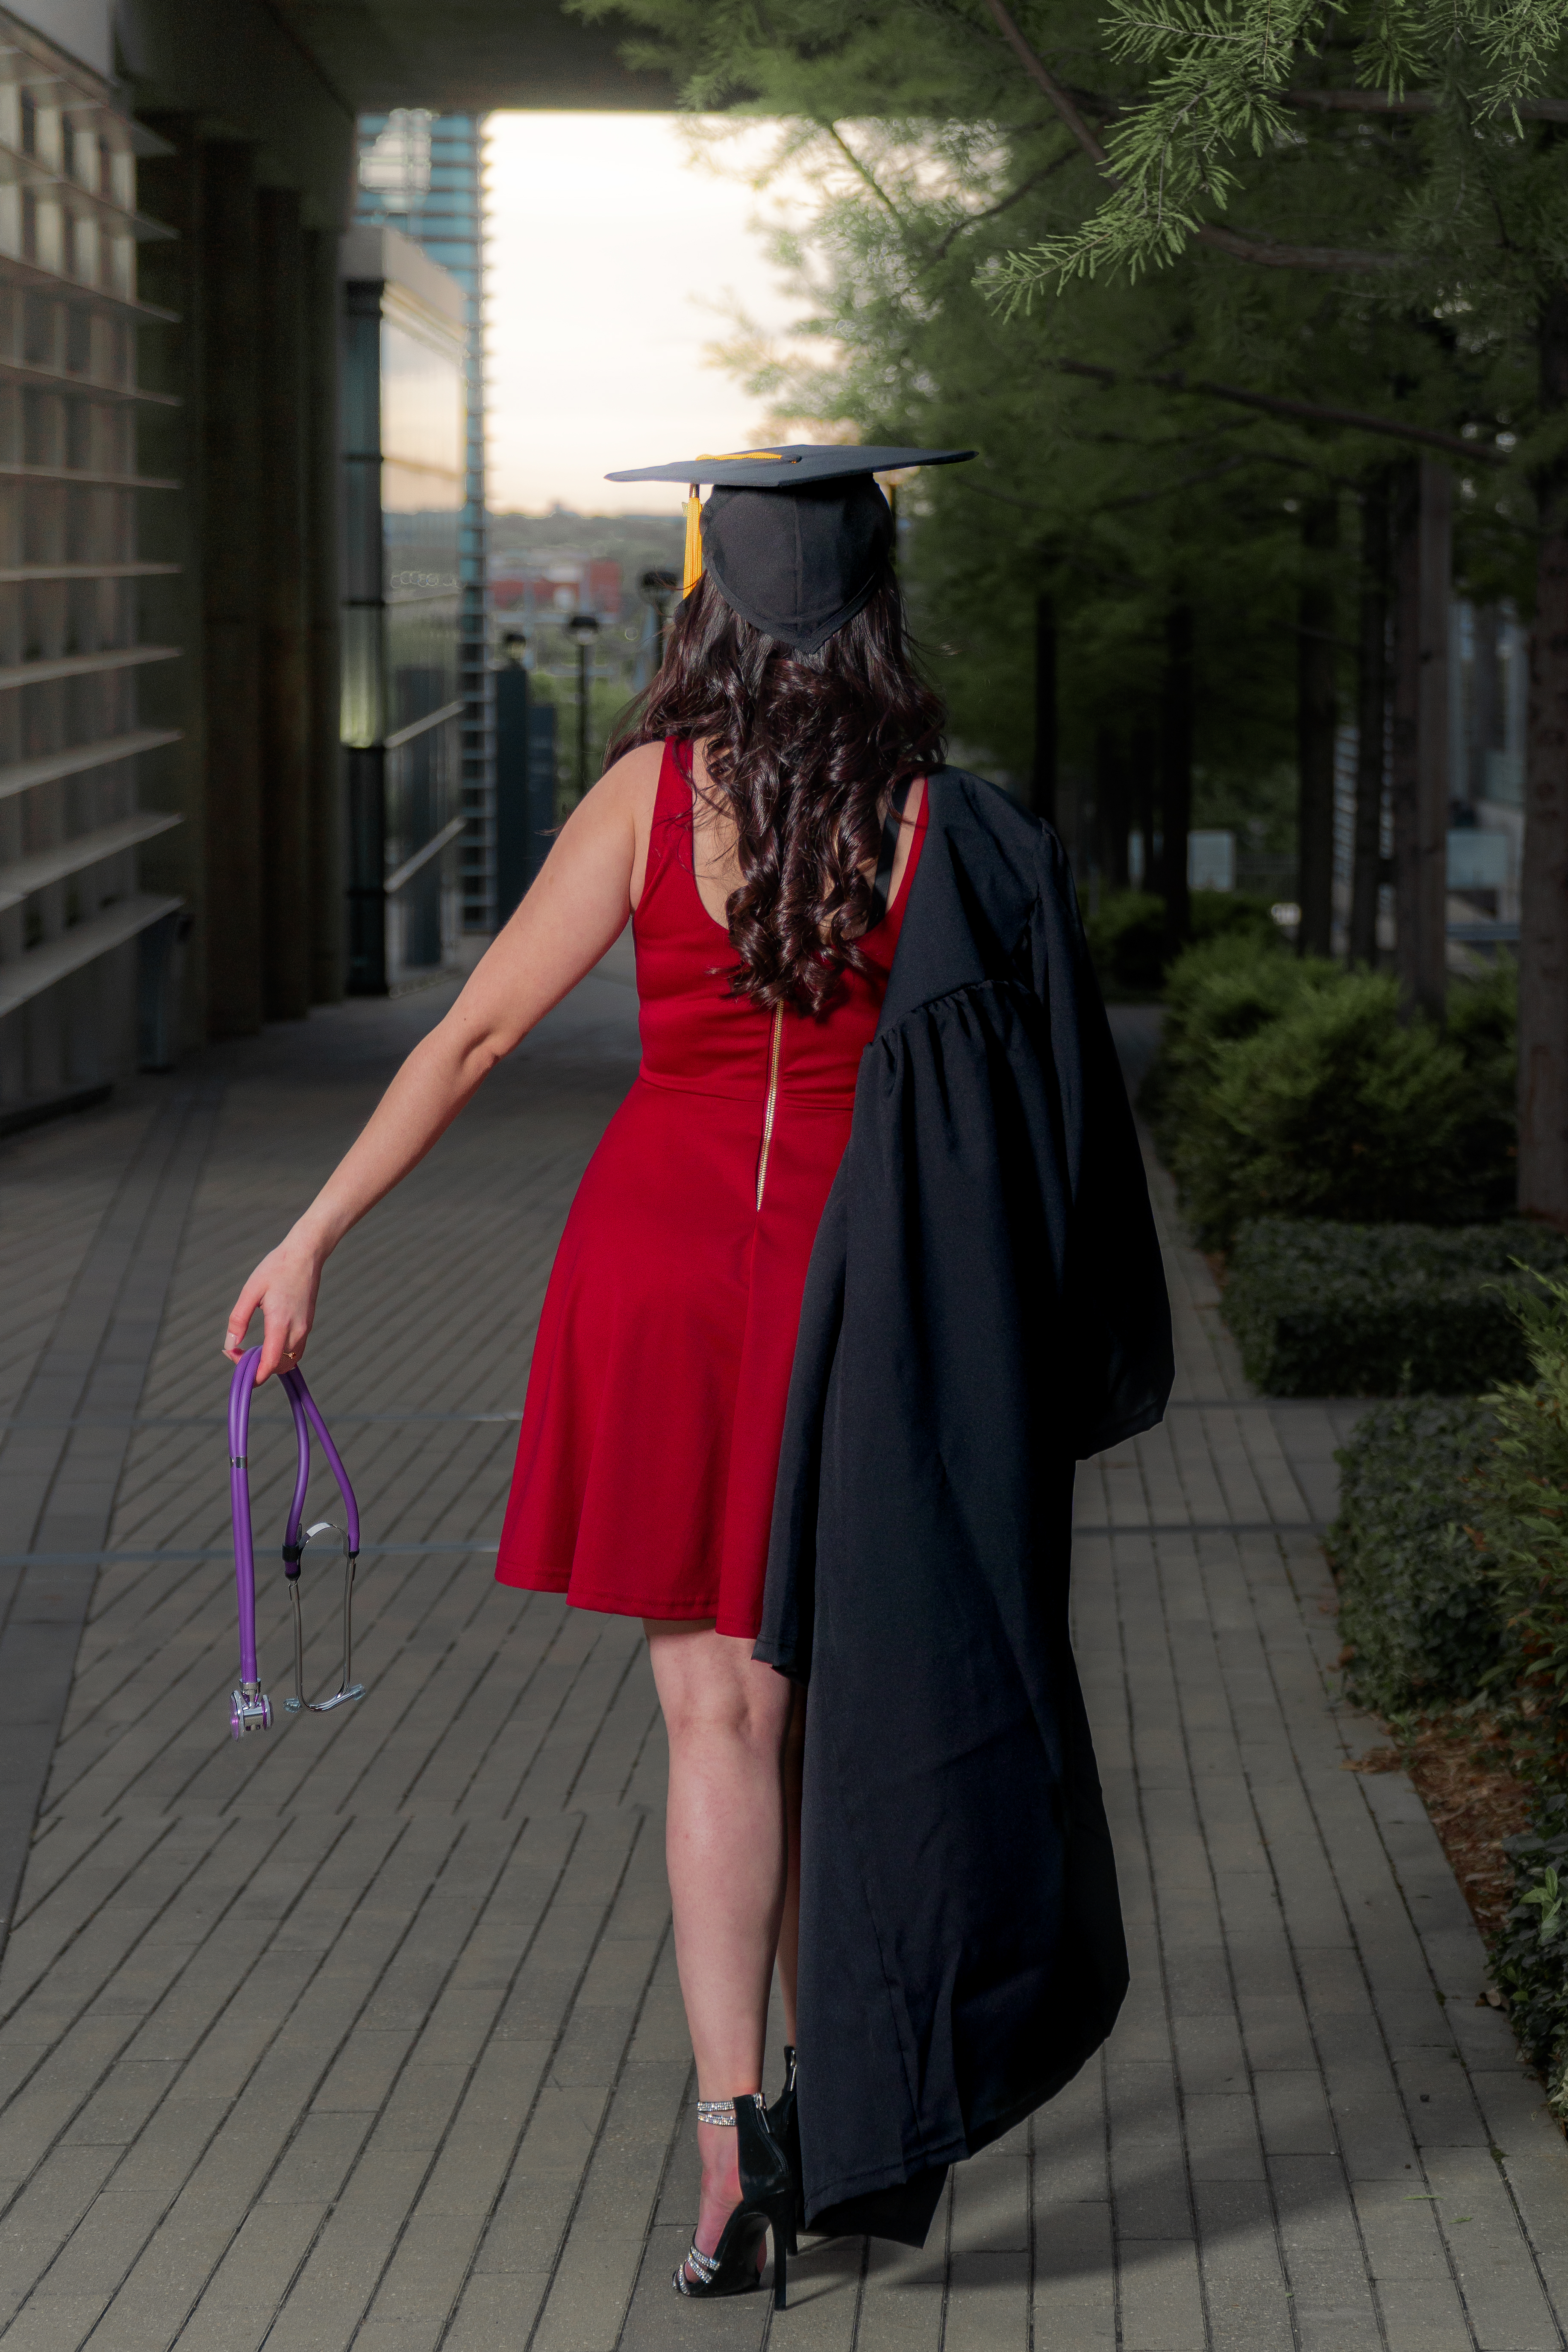 A photo of a nursing student at her graduation ceremony